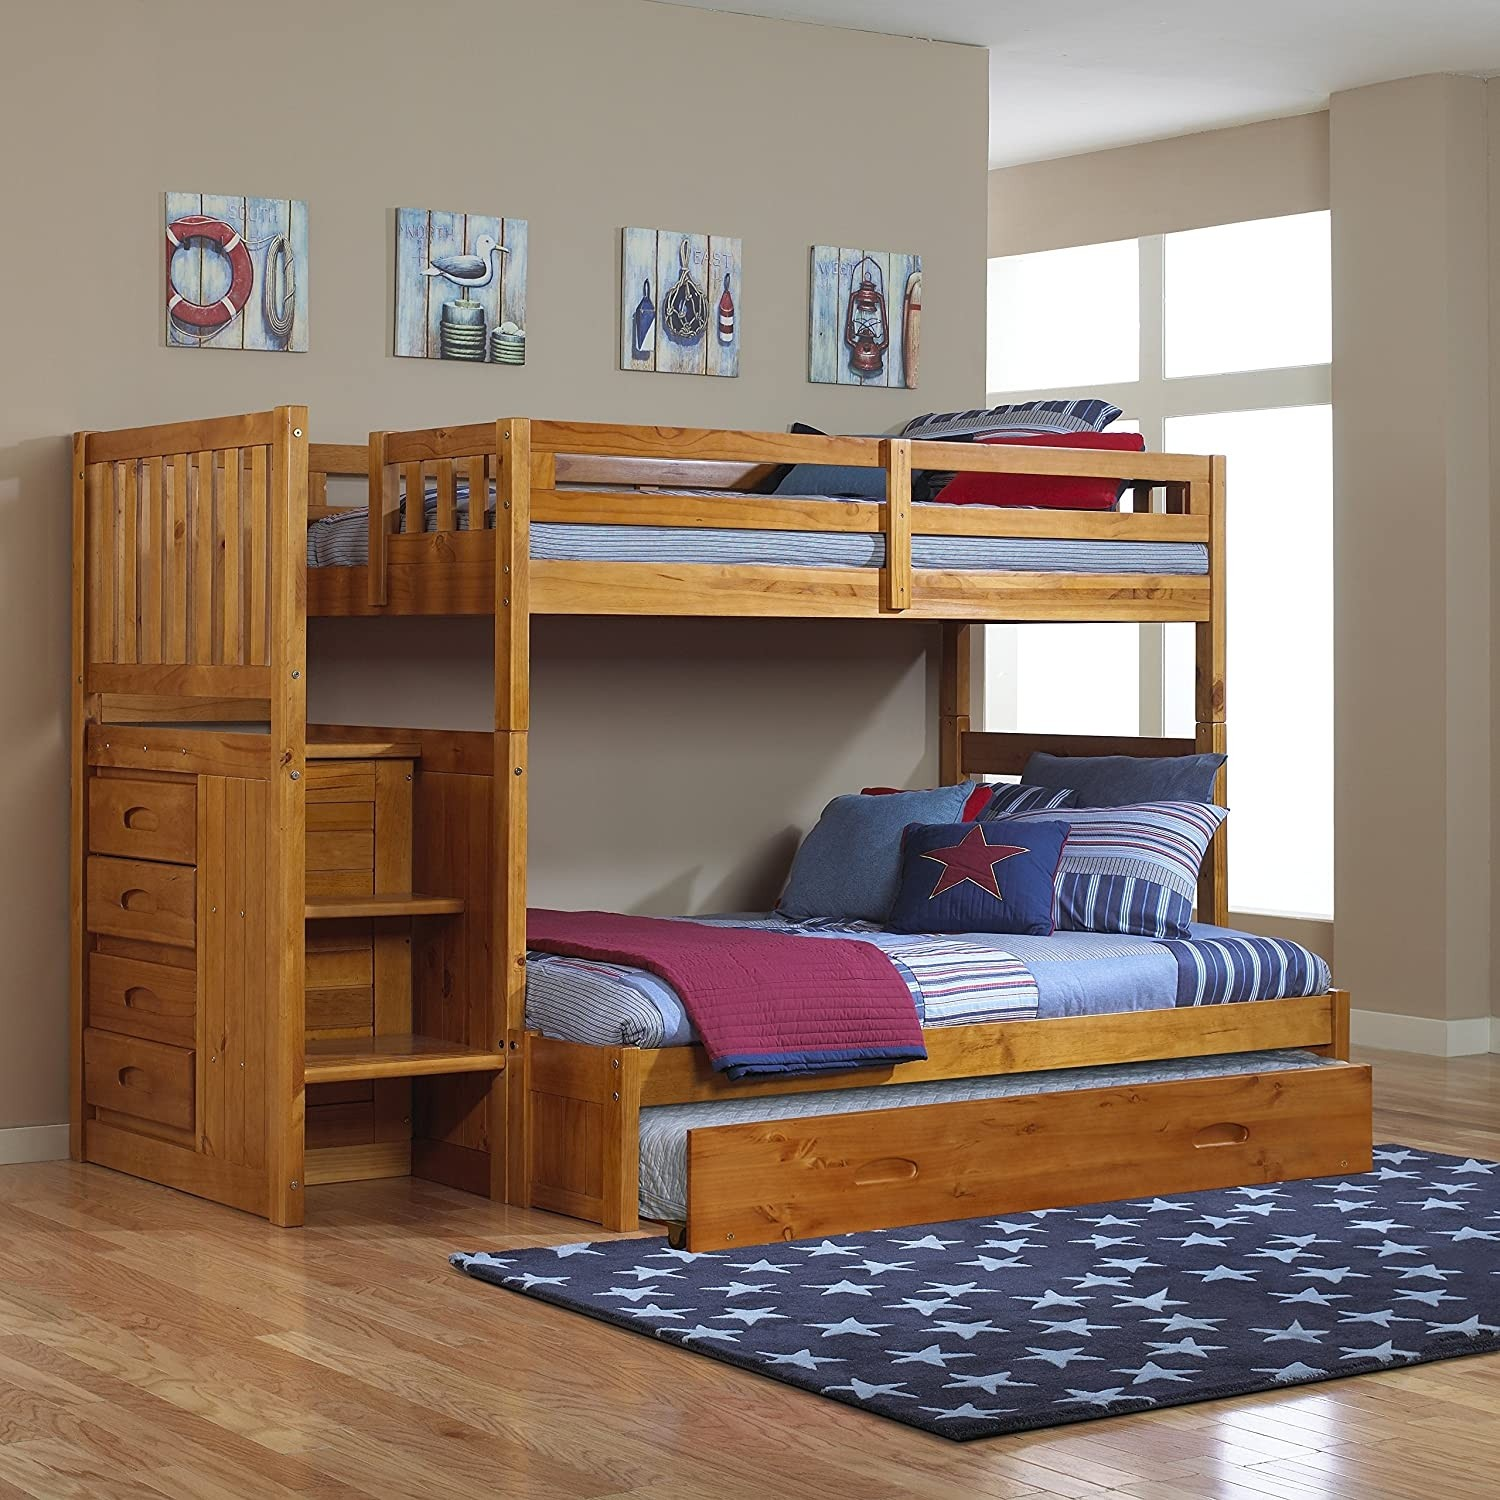 Bunk Beds With Full Bed On Bottom - Ideas on Foter